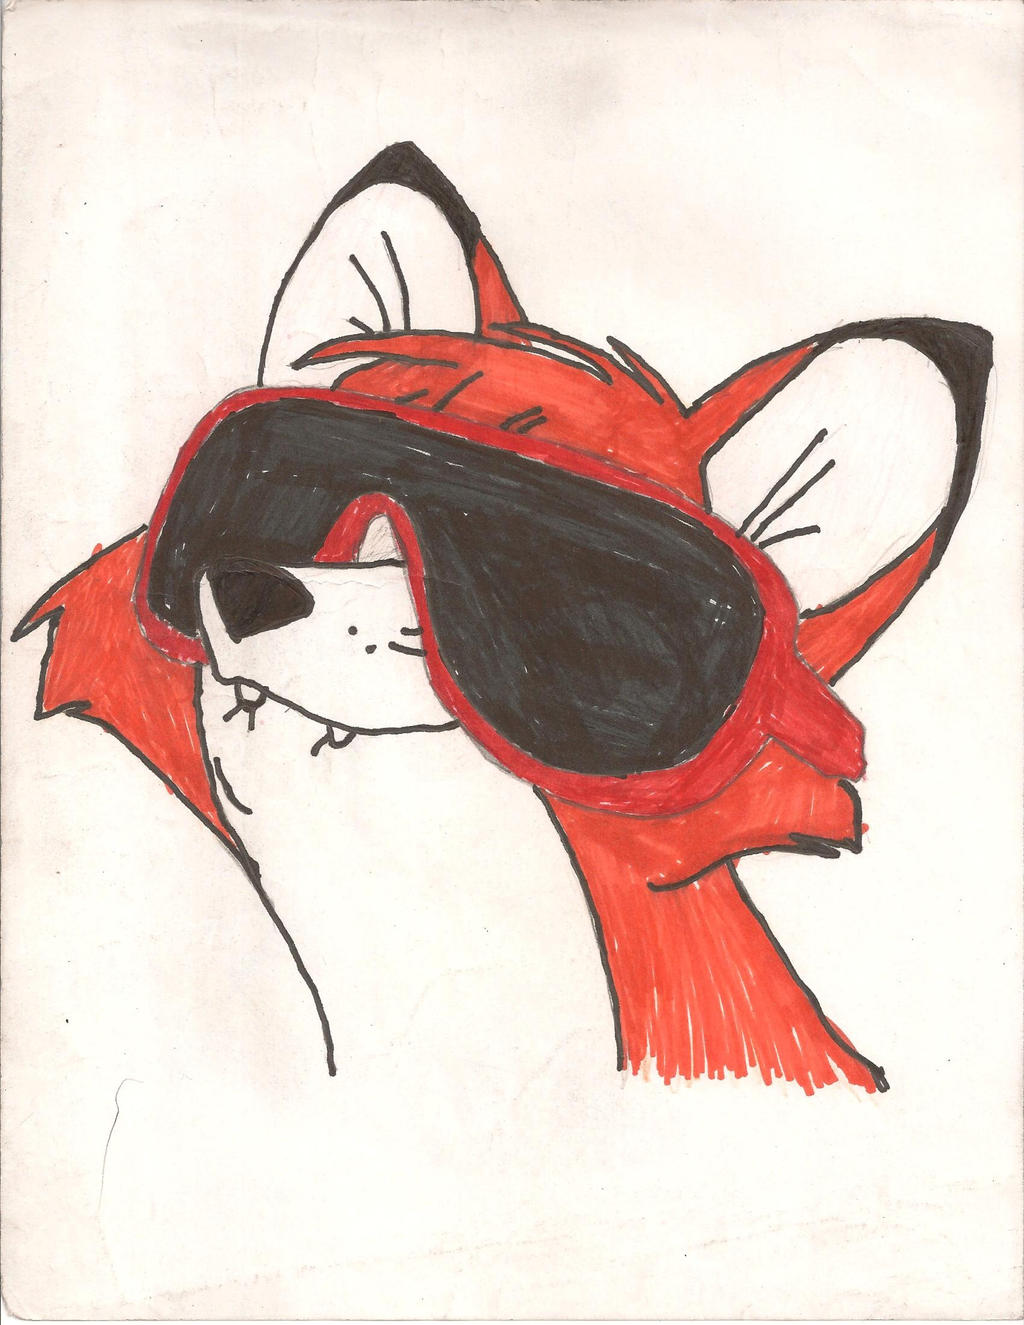 Cool fox by demon fox 96 on deviantart for Cool fox drawings